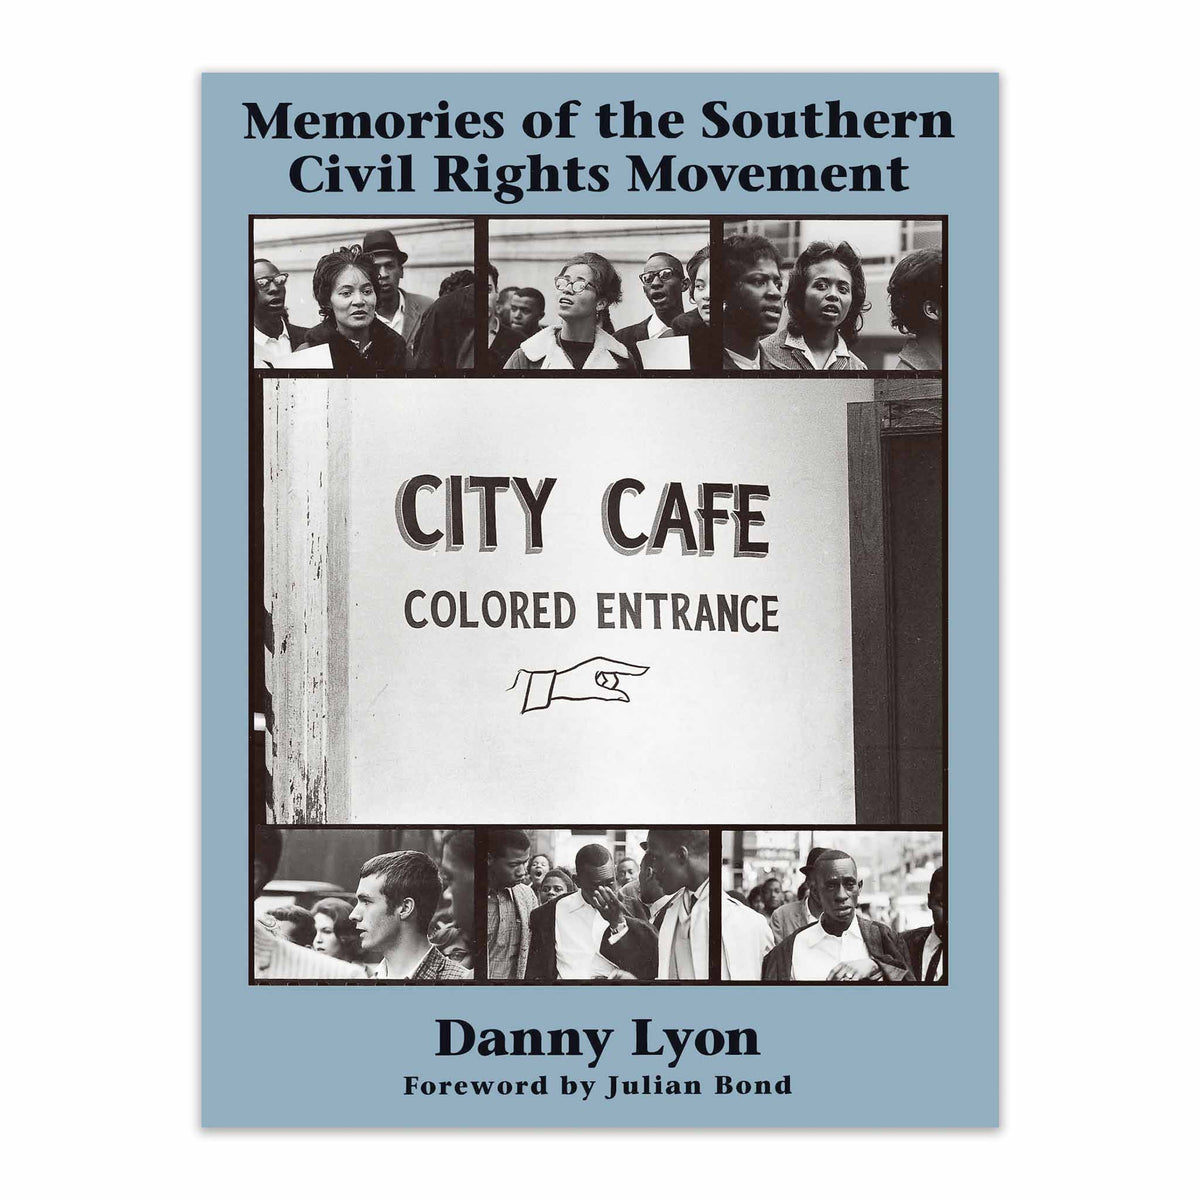 Memories of the Southern Civil Rights Movement